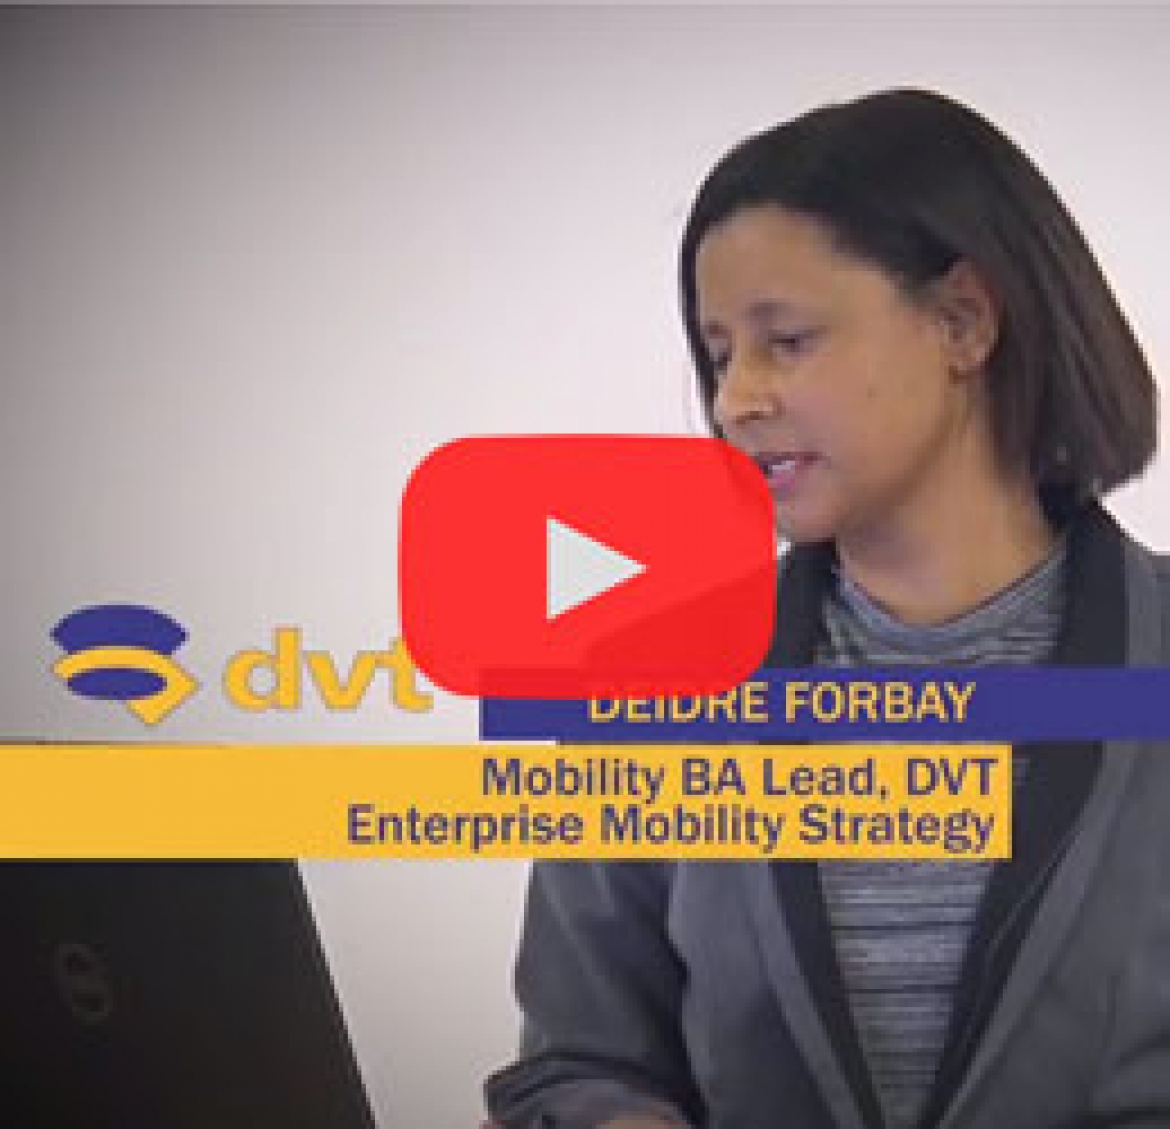 Why an Enterprise Mobility Strategy is important